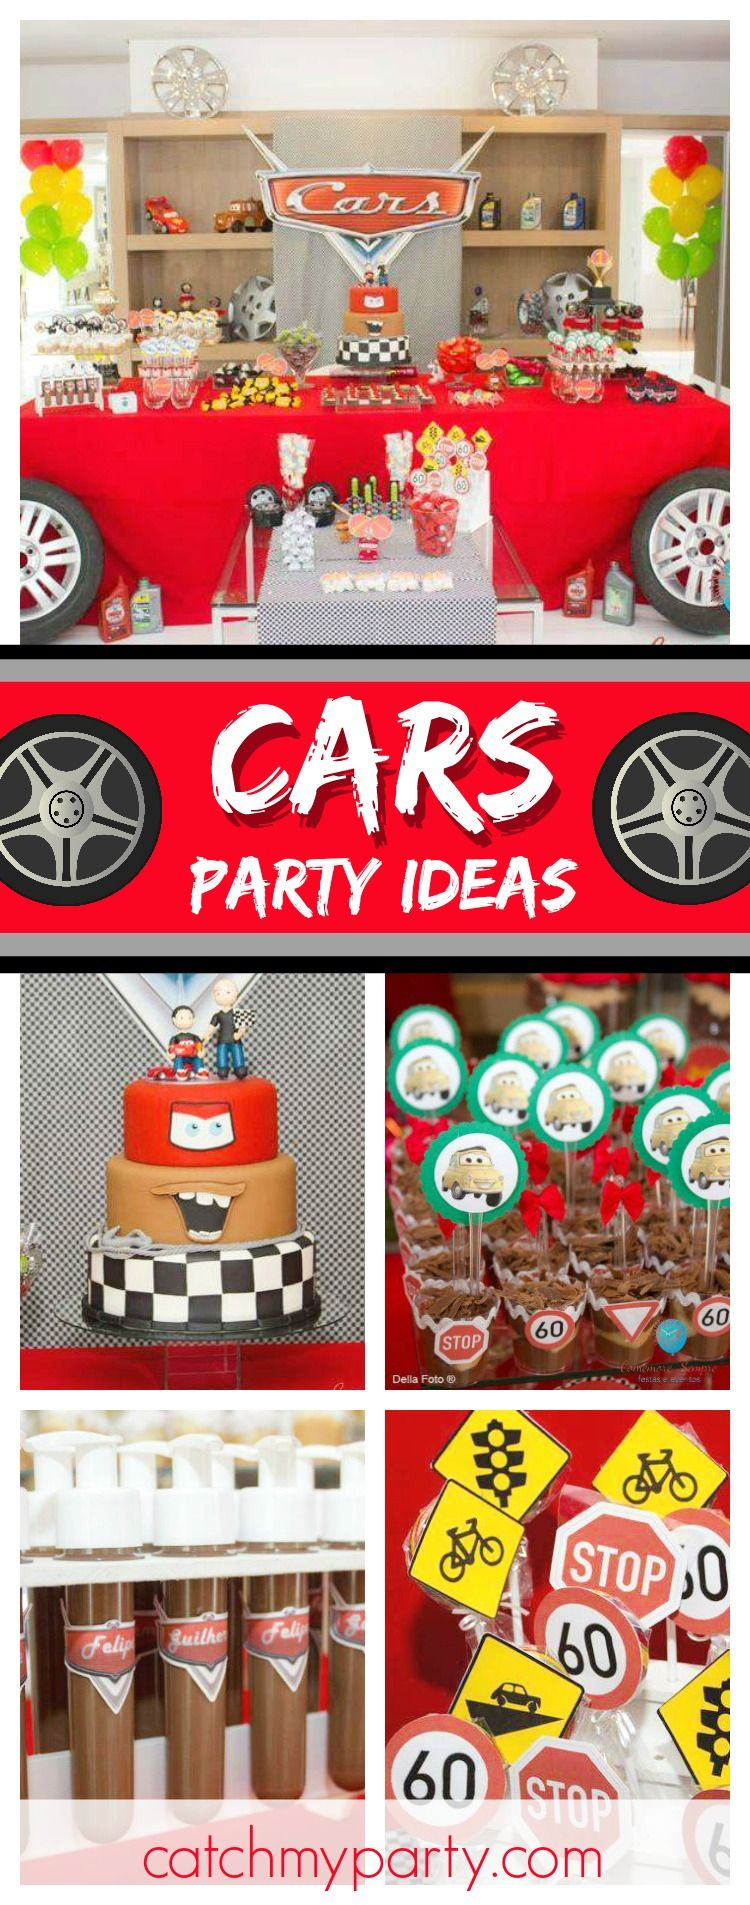 With Cars 3 Coming Out In The Summer Lots Of Little Boys Will Be Loving A Party Like This One Love Dessert Table Seemoreparty Ideas